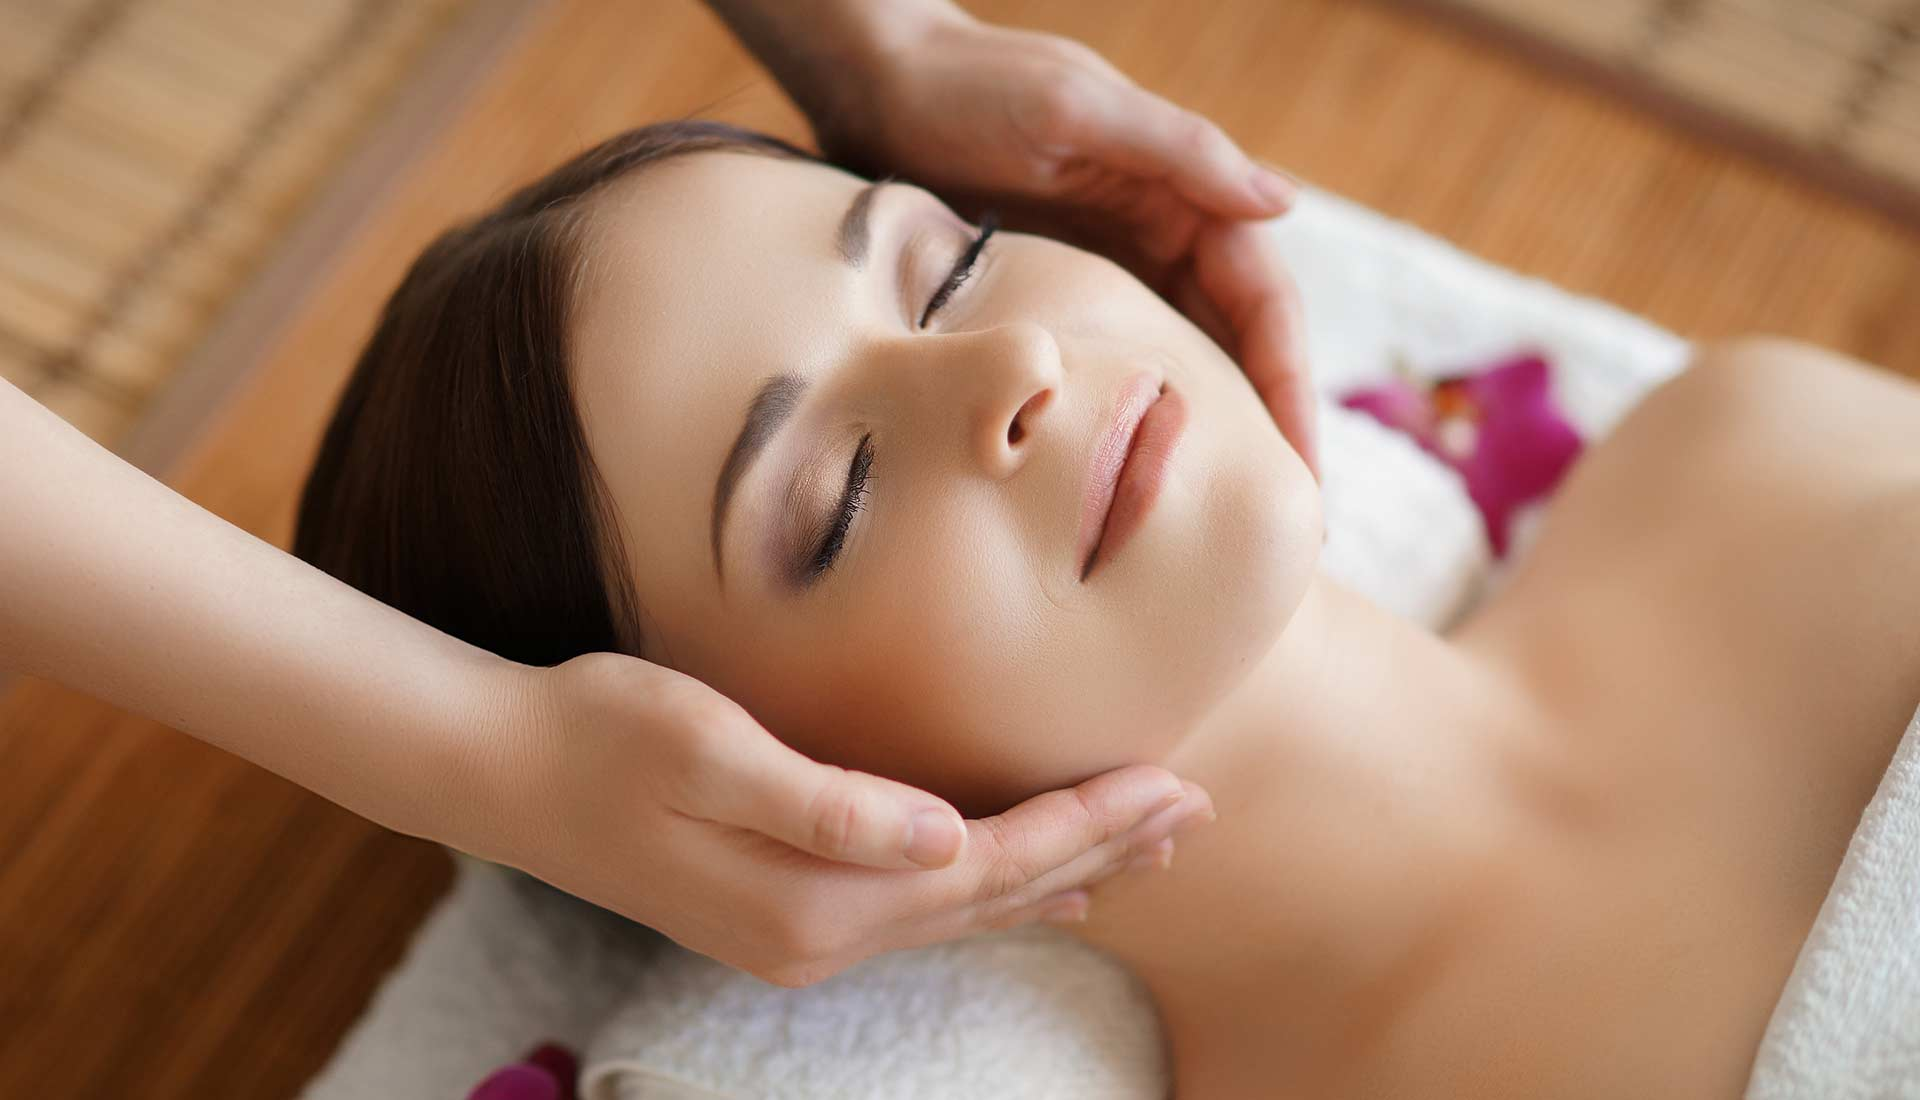 Pamper your self with a facial